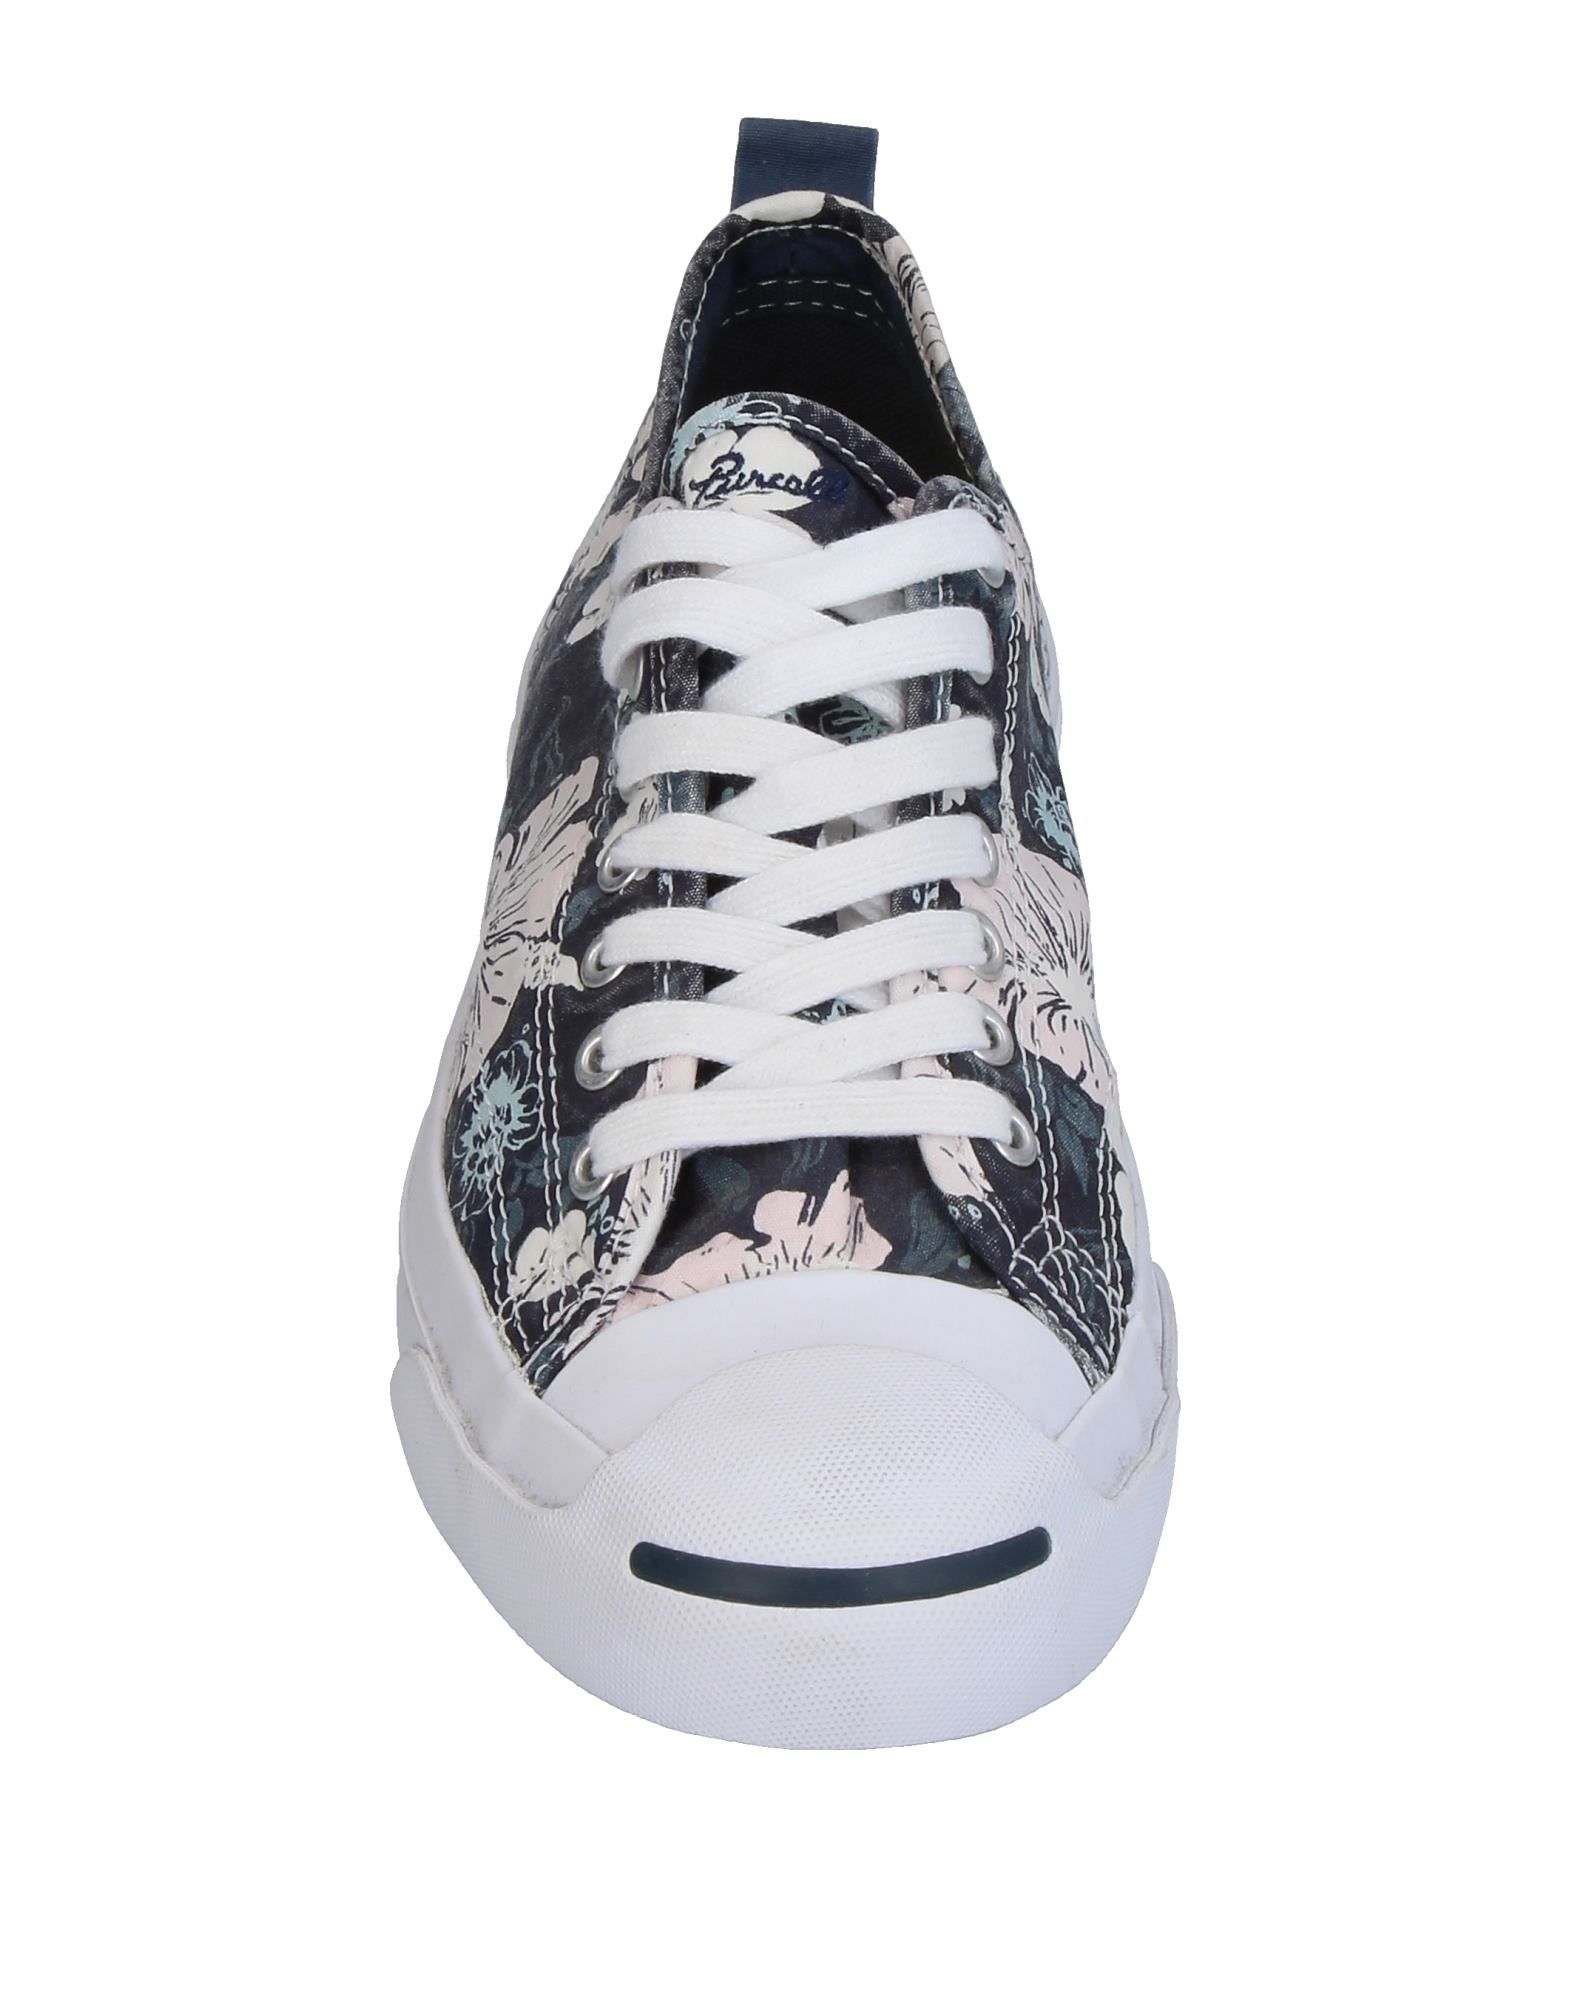 Sneakers Converse Jack Purcell Homme - Sneakers Converse Jack Purcell sur